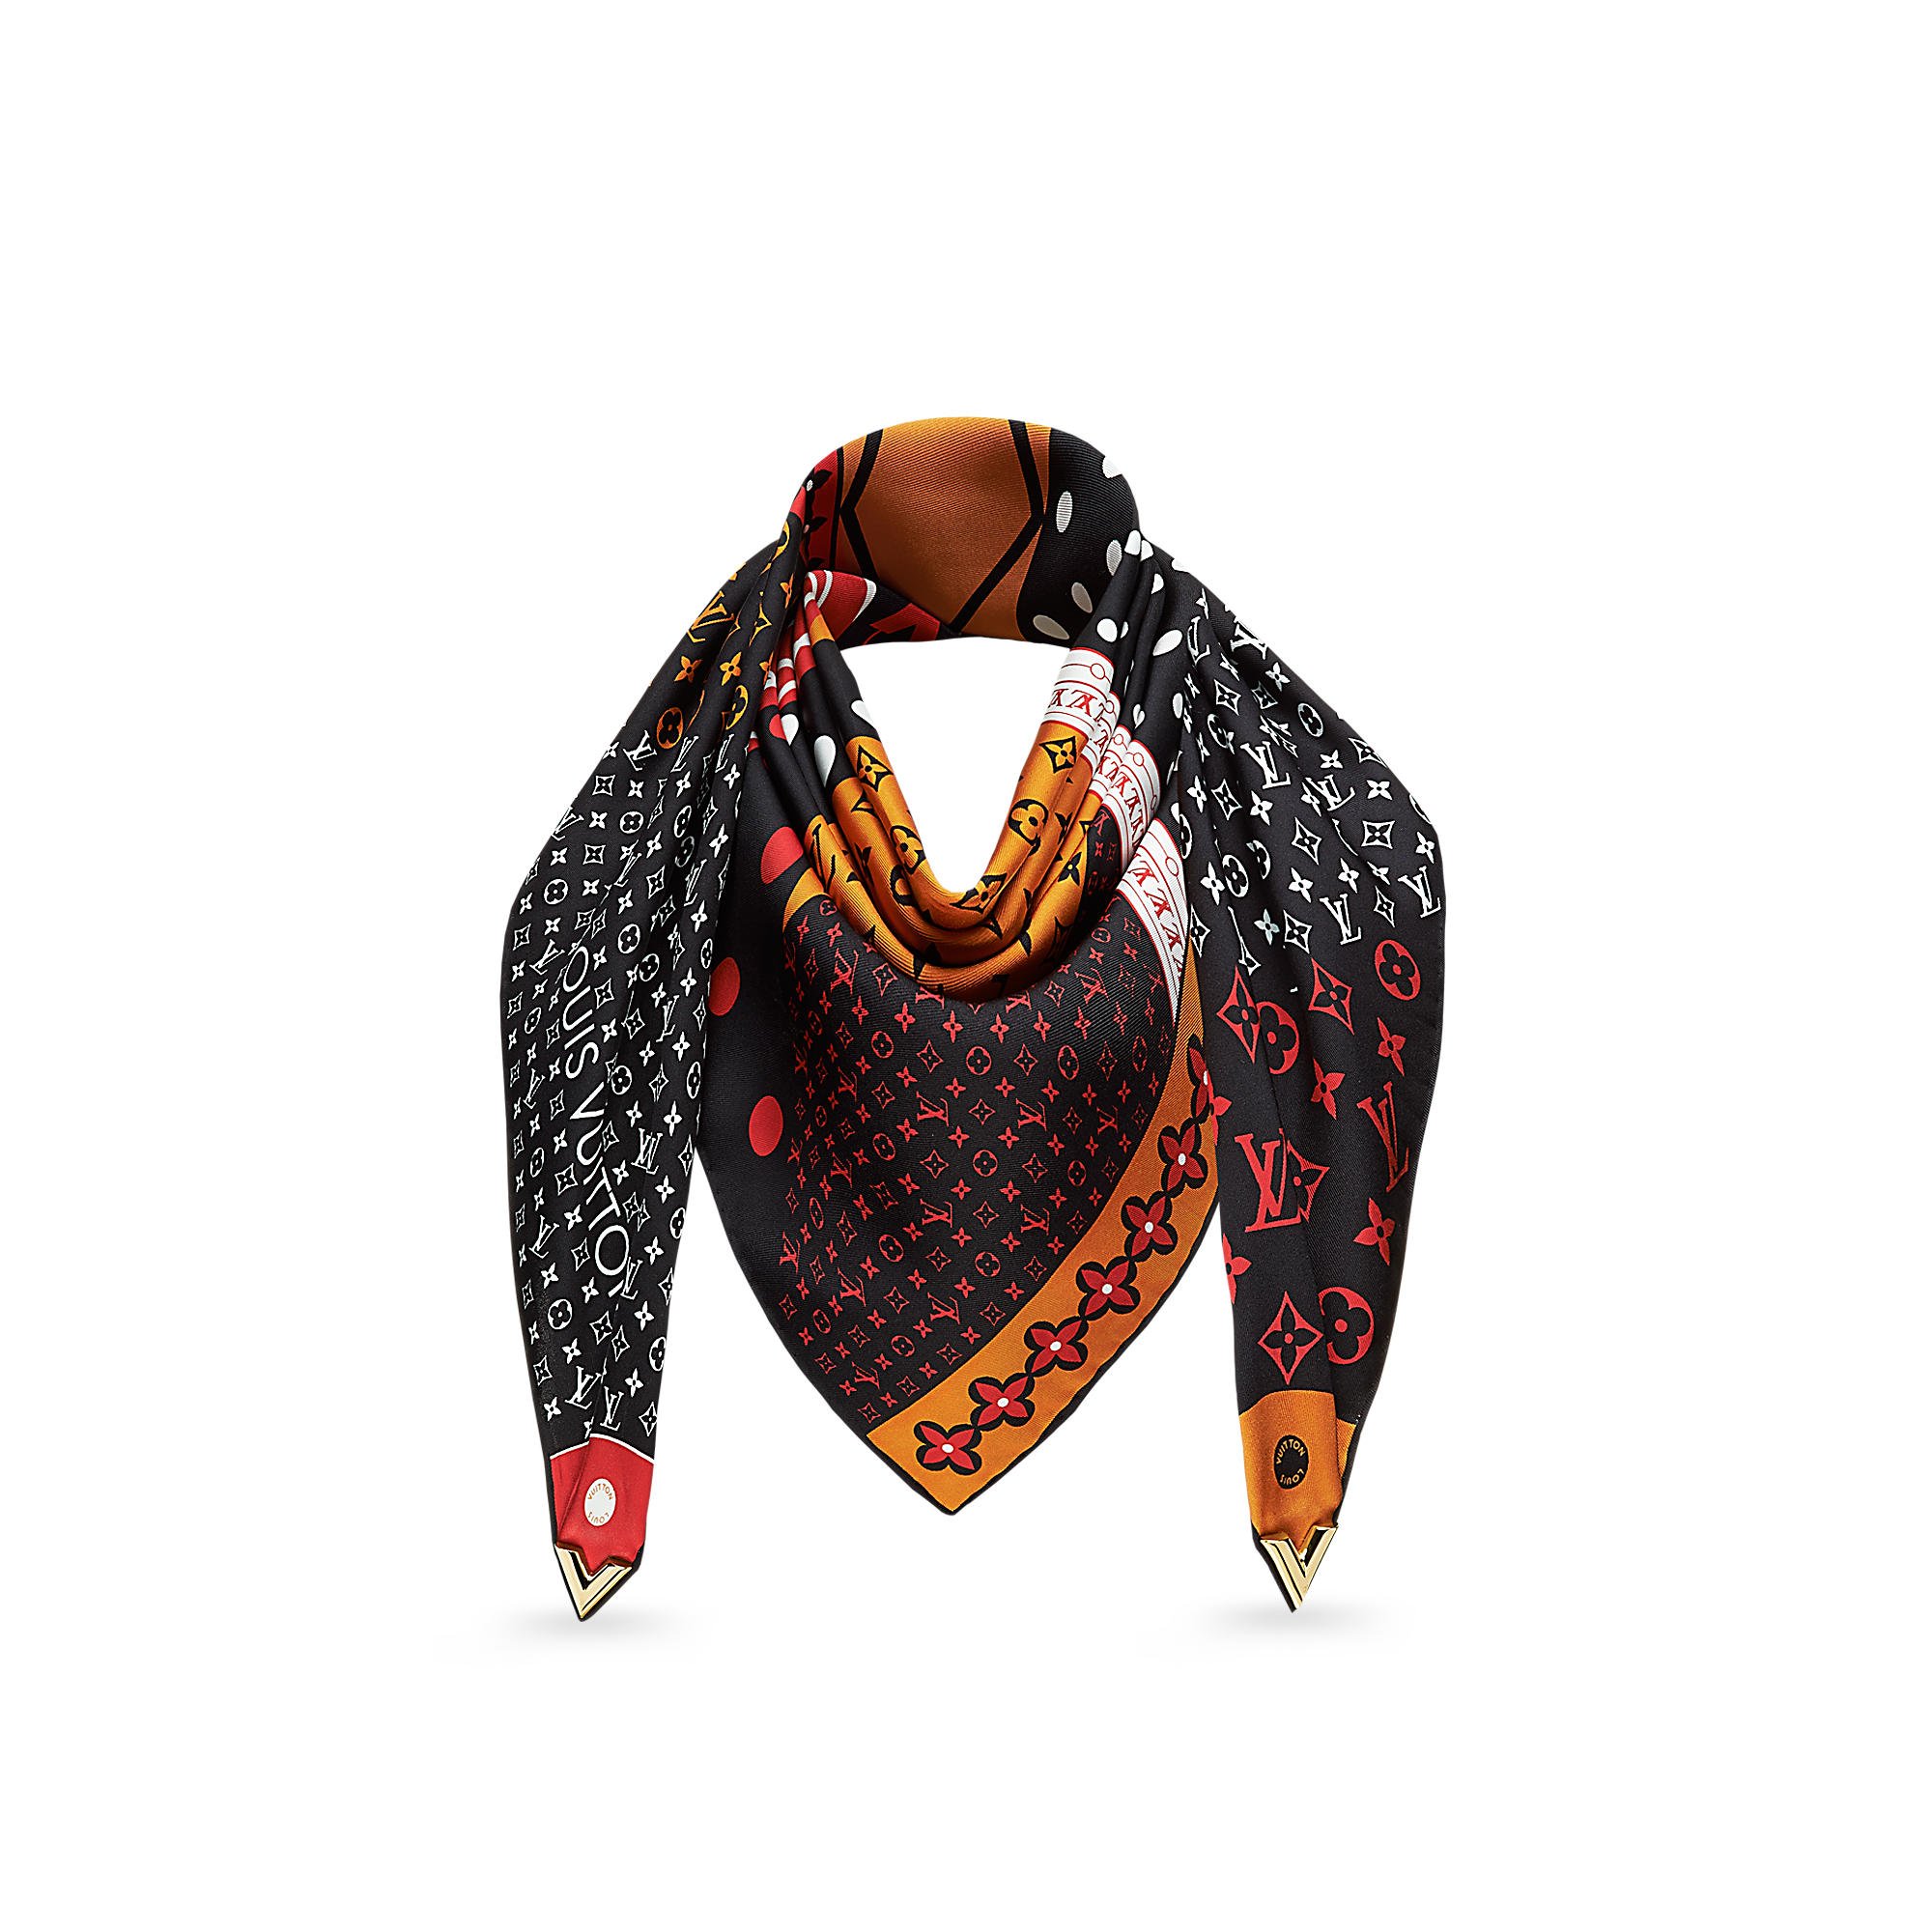 Louis Vuitton M70171 Foulard Essential V Patchwork